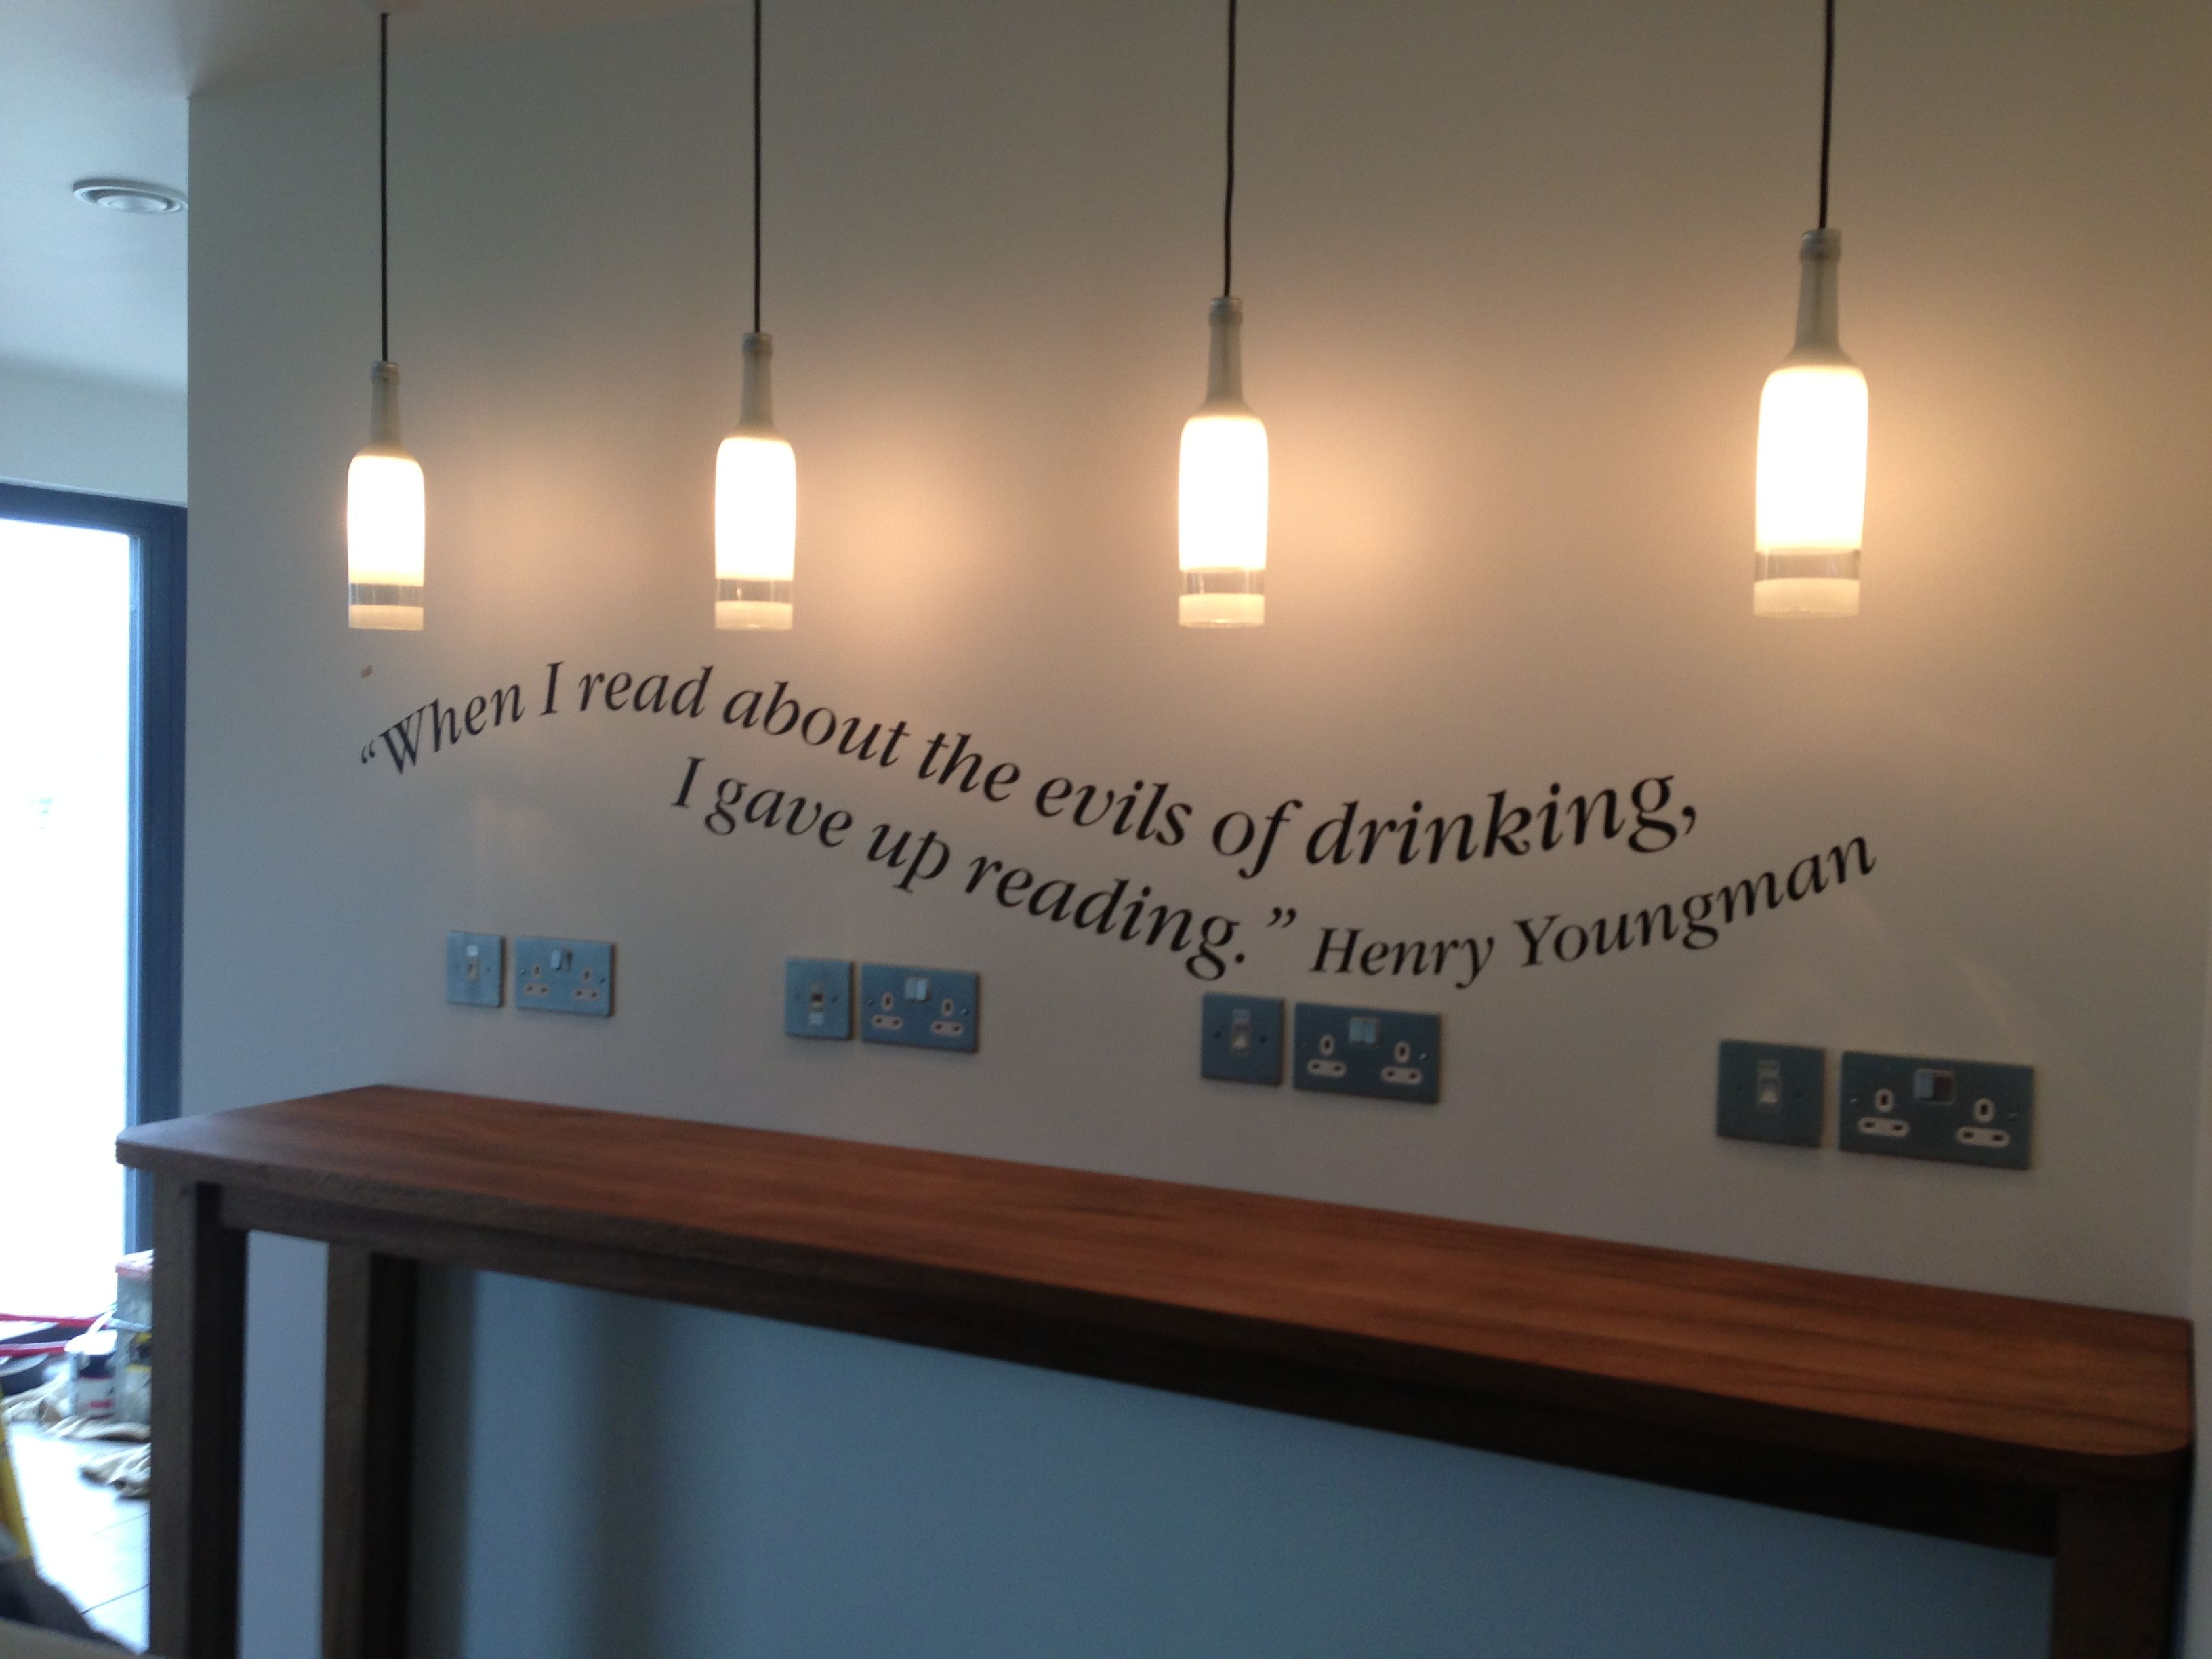 Great Day Weststreetwine With Quotes Going On The Walls Thanks